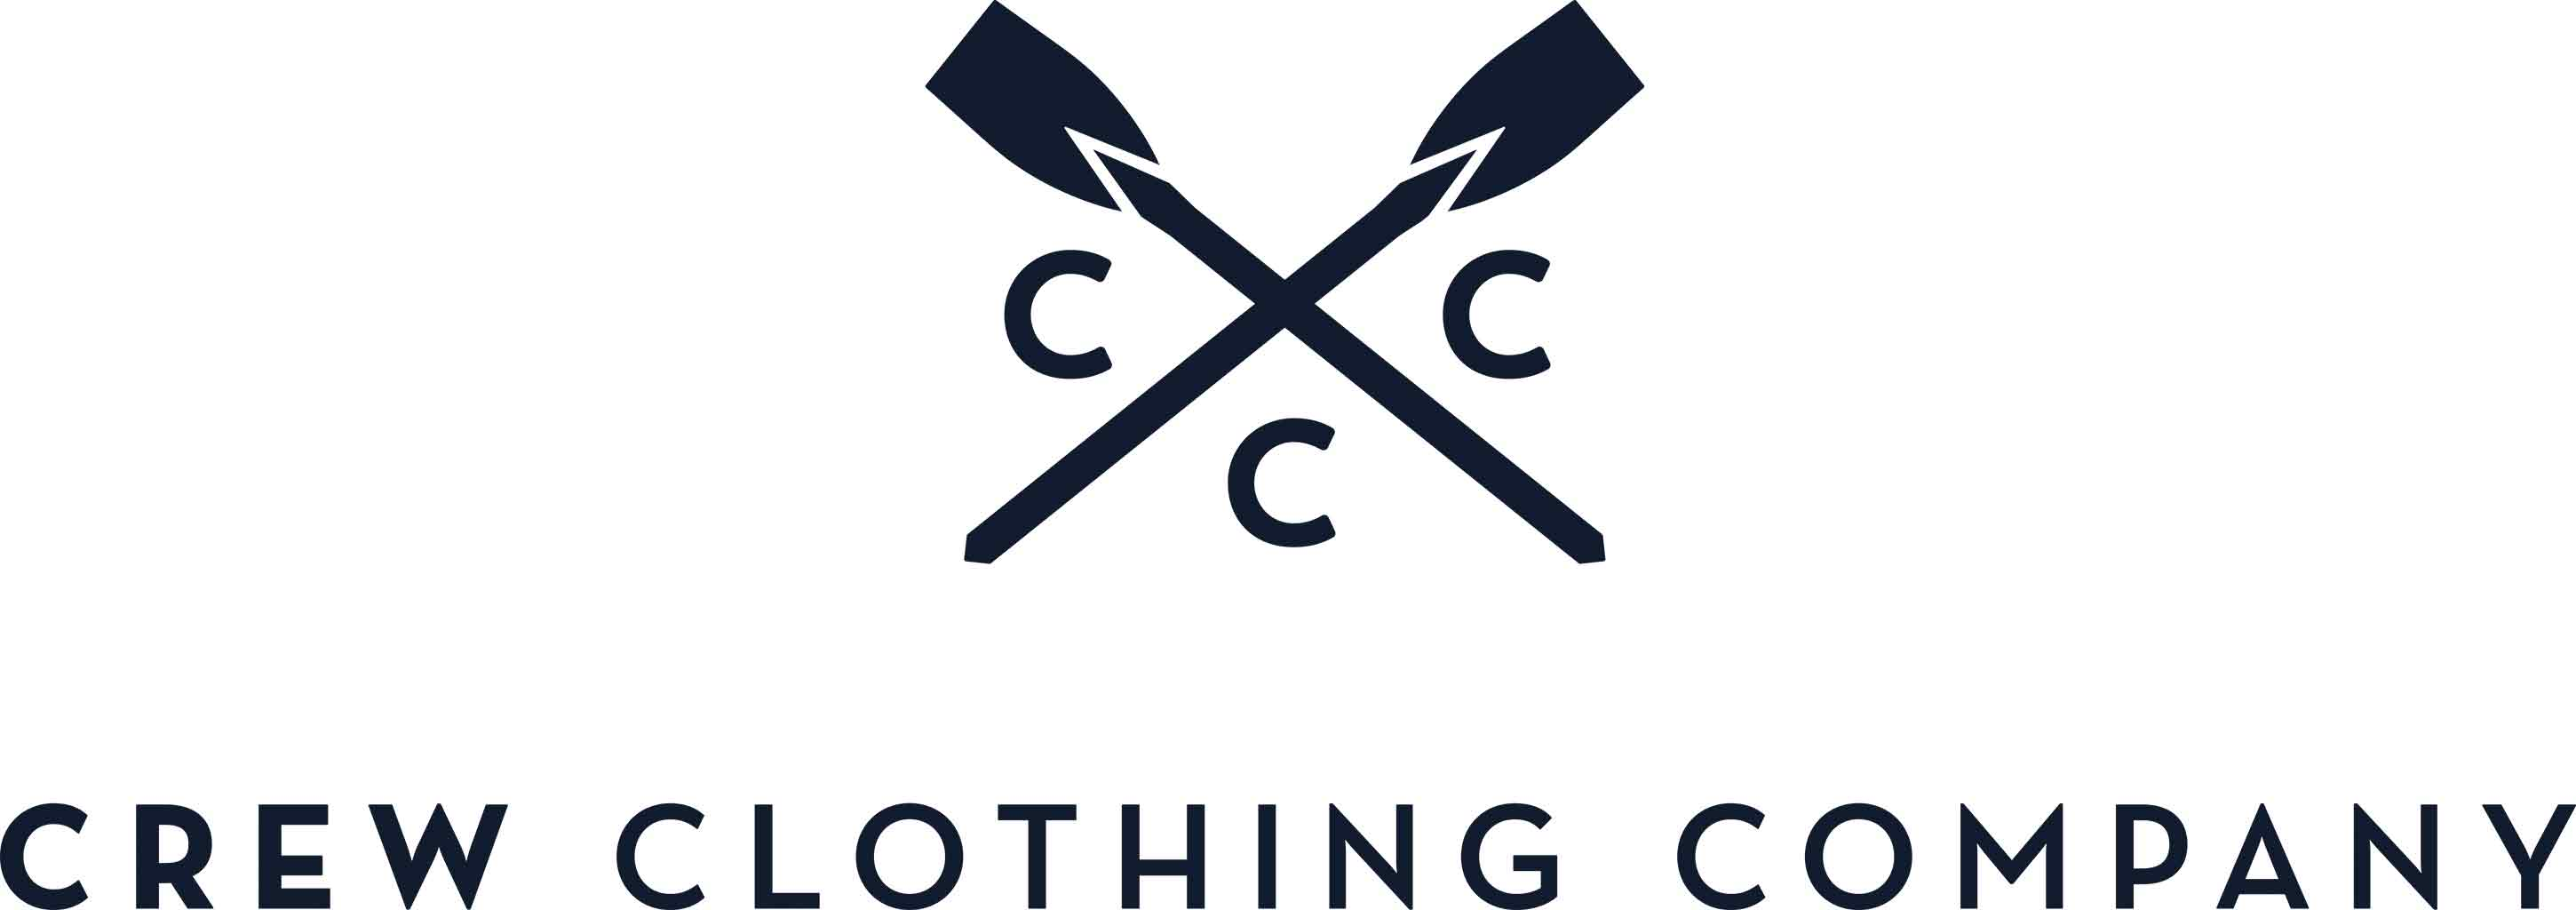 Crew_Clothing_Company_C